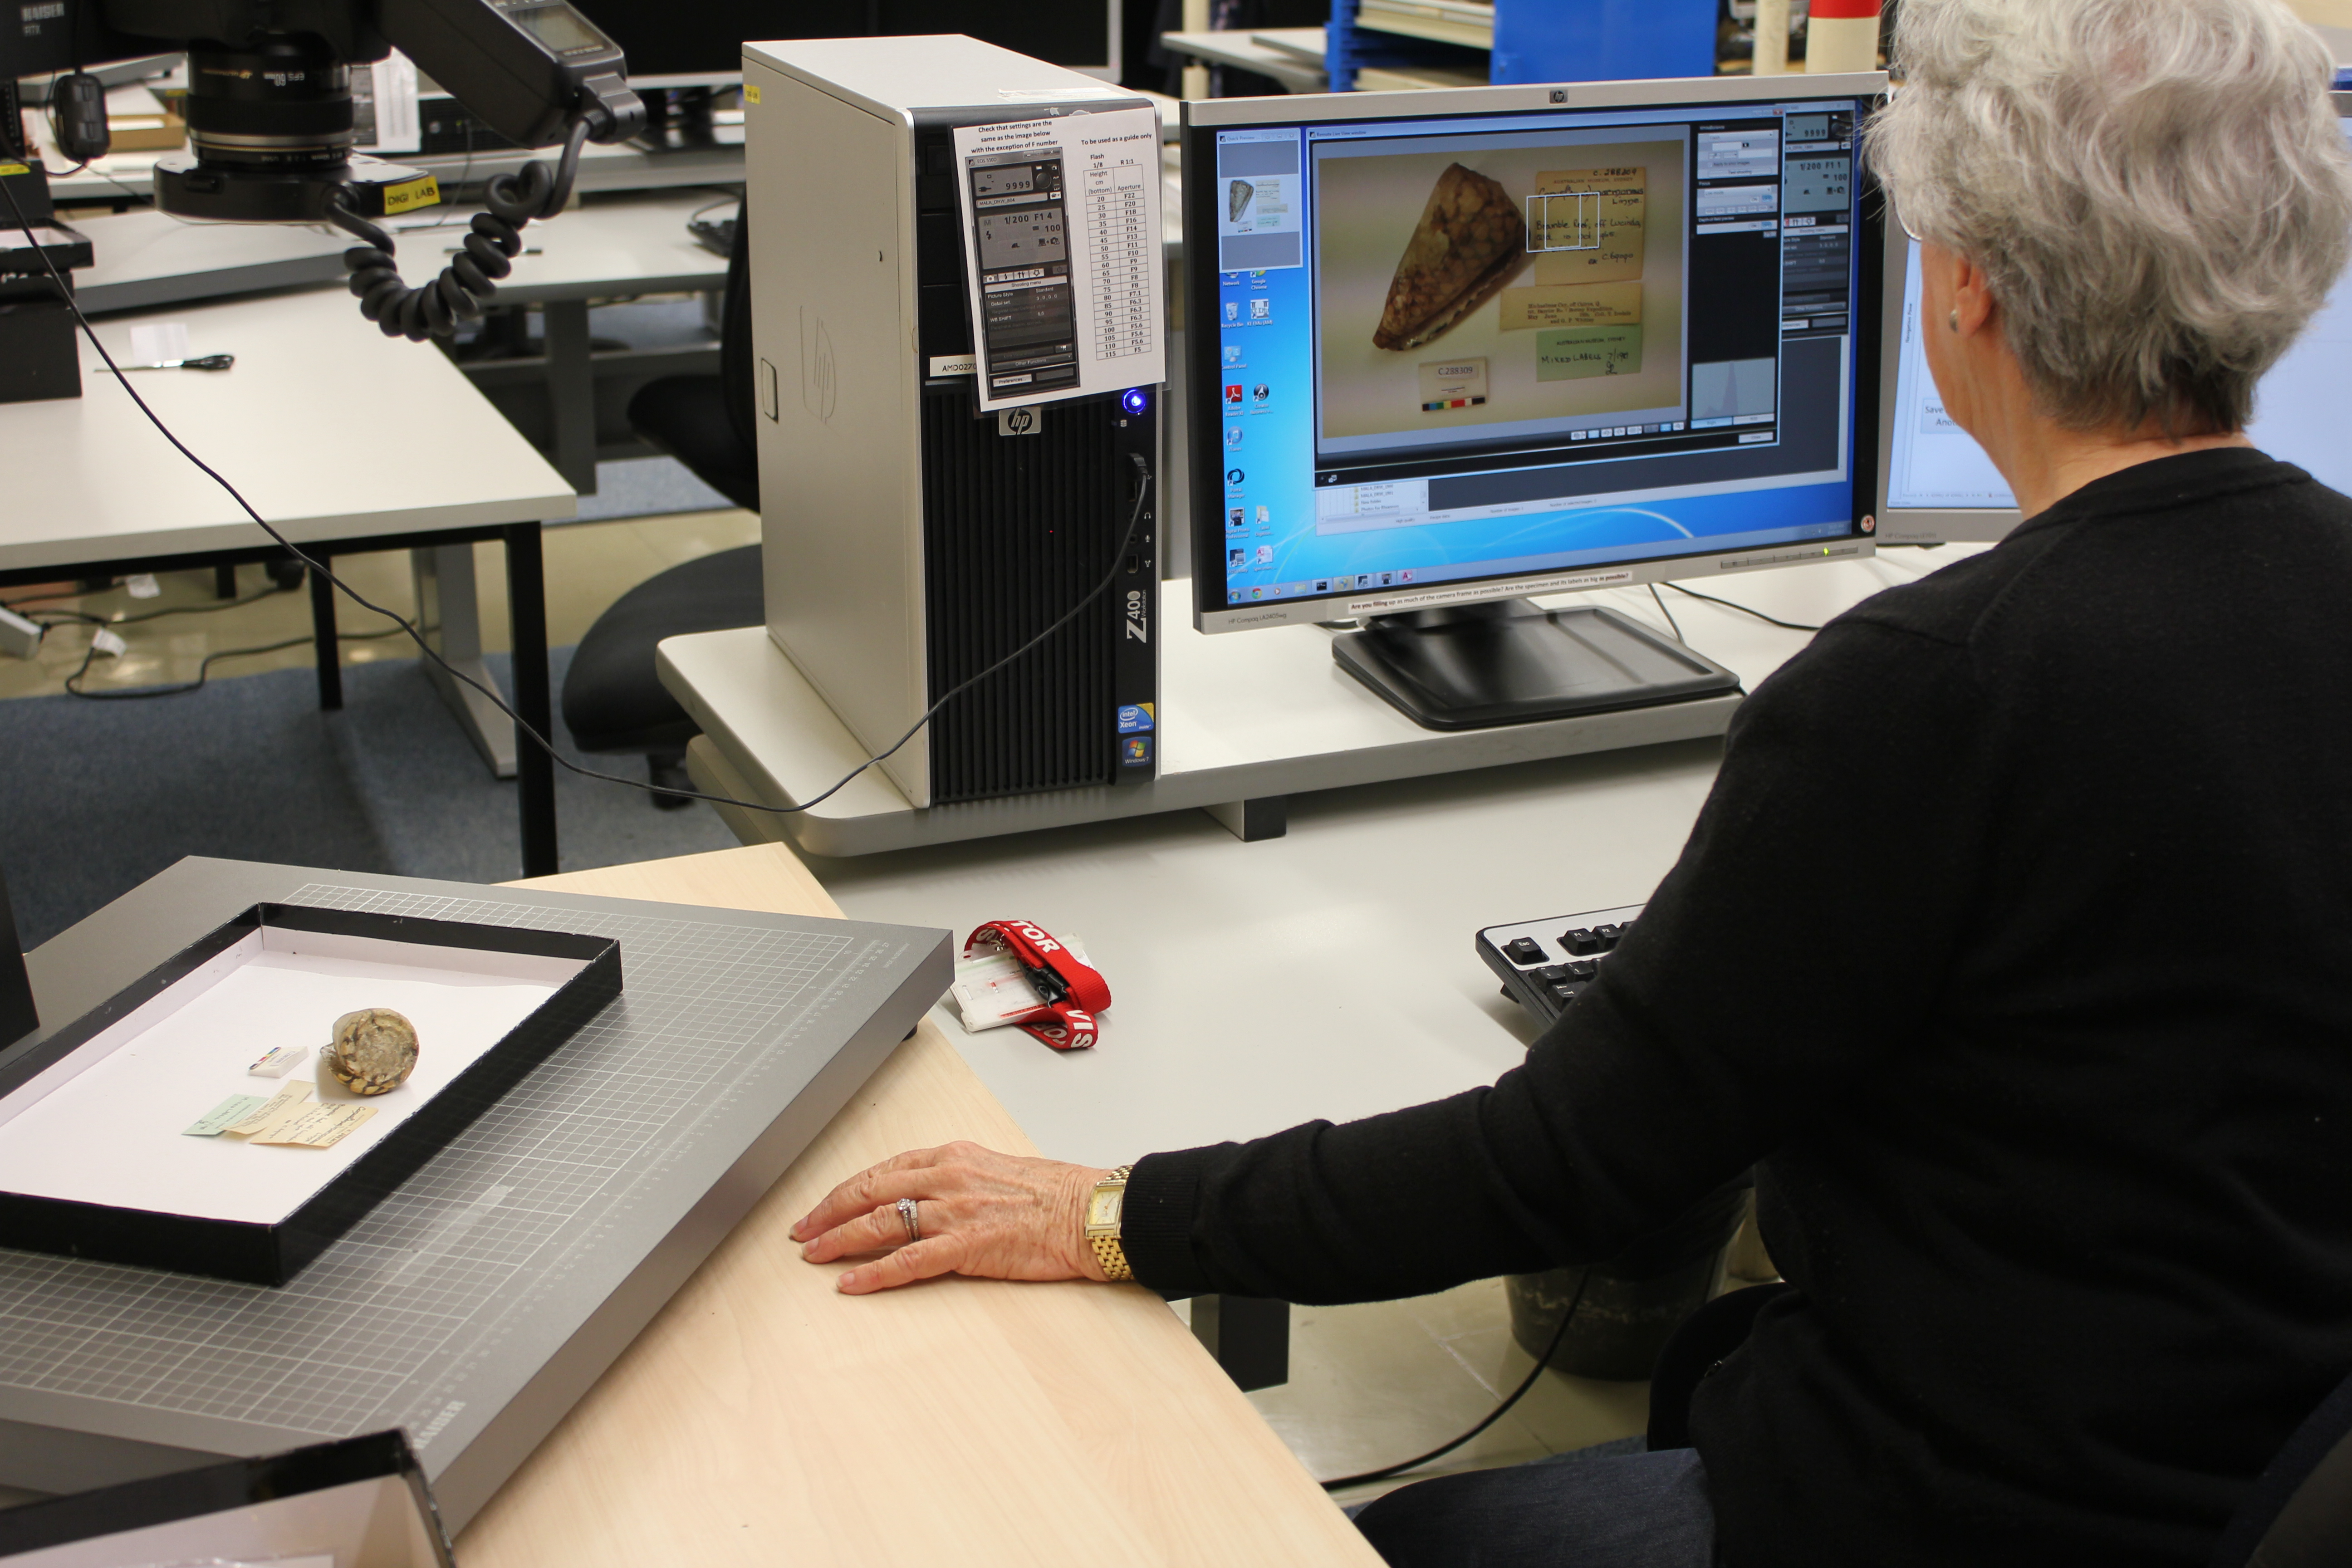 Image: Volunteers tackling digitisation of collections